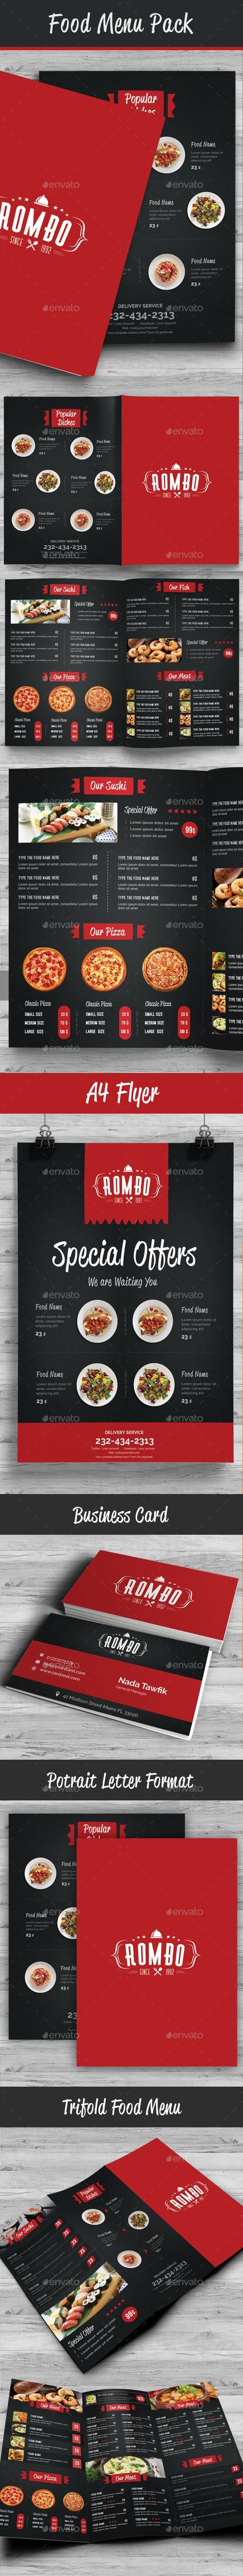 Food Menu Pack Template PSD #design Download: http://graphicriver.net/item/food-menu-pack-10/14174869?ref=ksioks